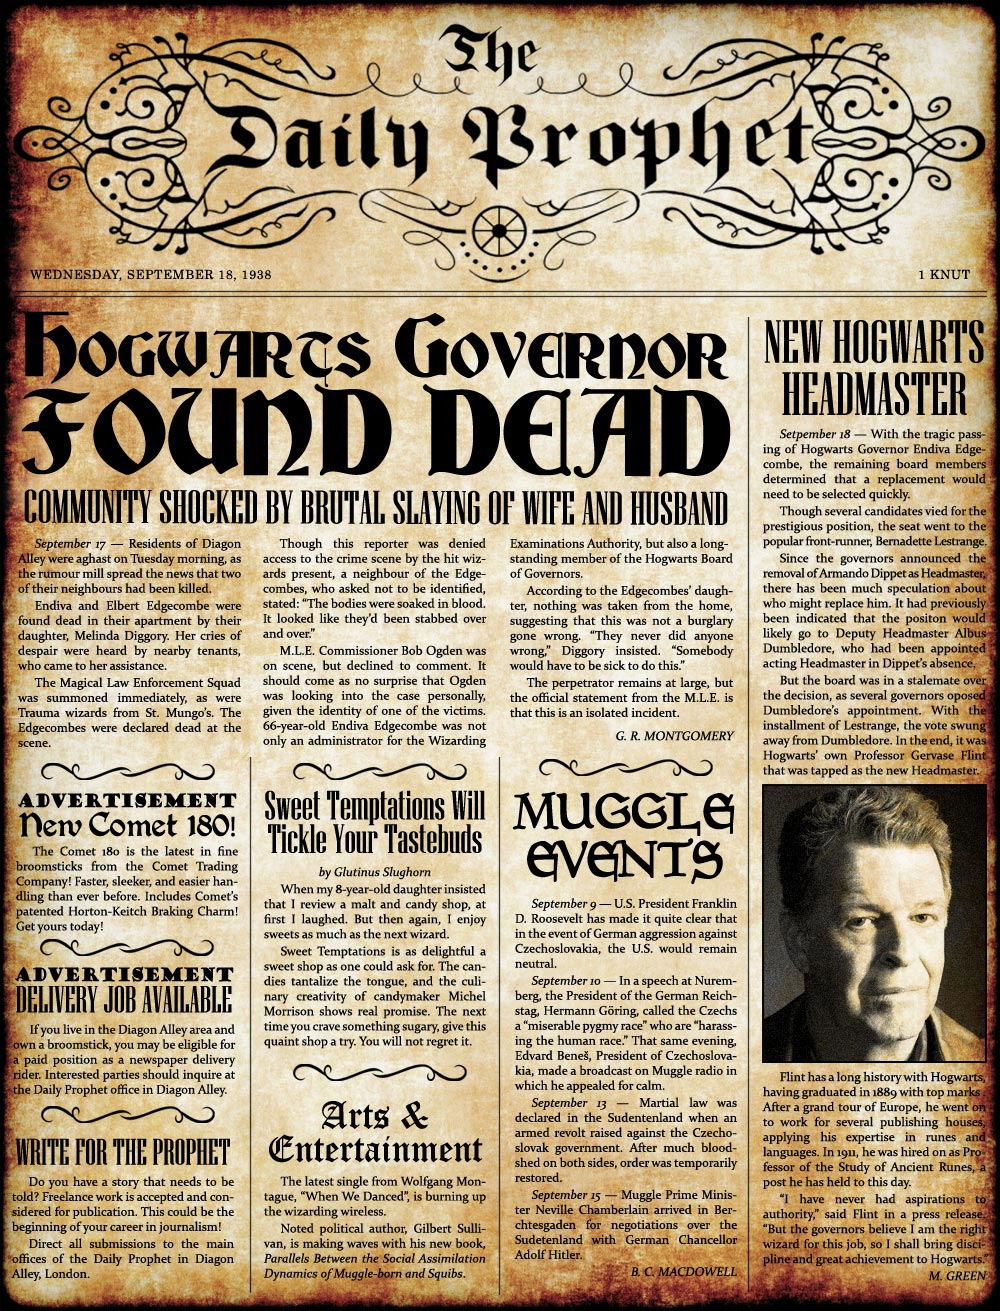 1938 09 18 The Daily Prophet Hogwarts Governor Found Dead